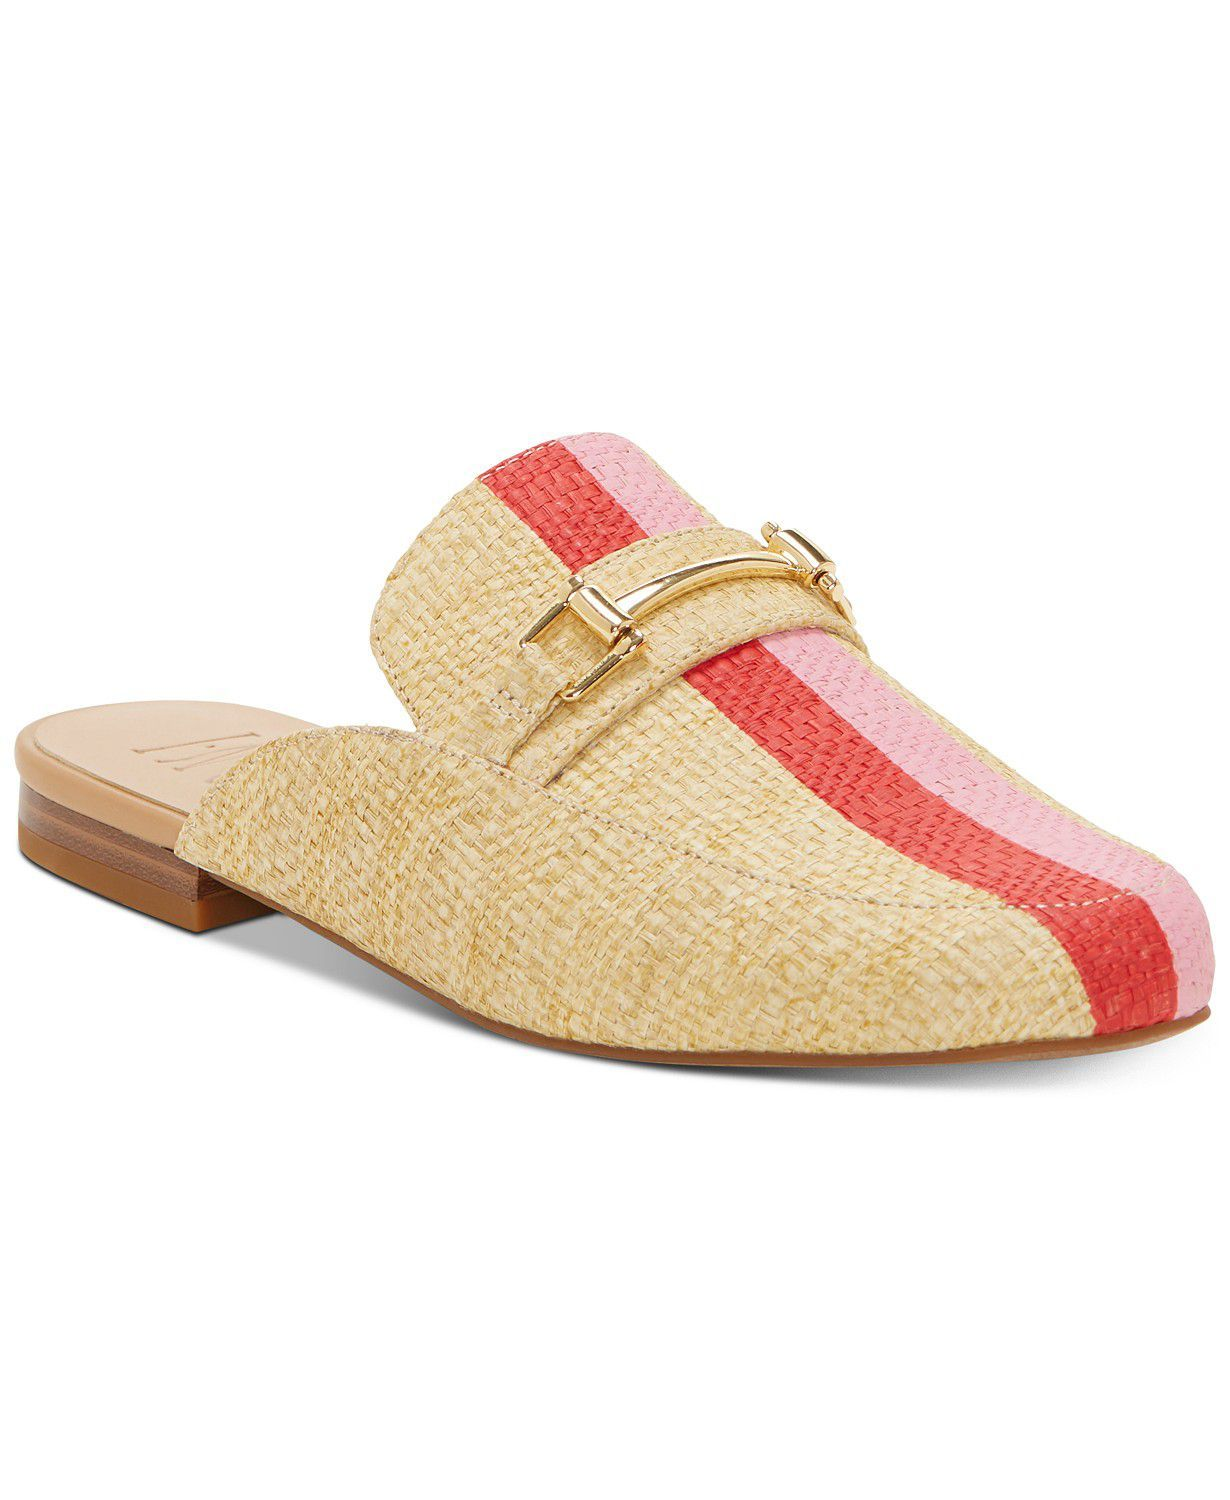 Woven Mules INC International Concepts macys.com $43.93 SHOP NOW Bring the slip-on that's part preppy, part low-key into the office. Make the shape even more summer-ready in a straw-like material and fruit punch stripes.